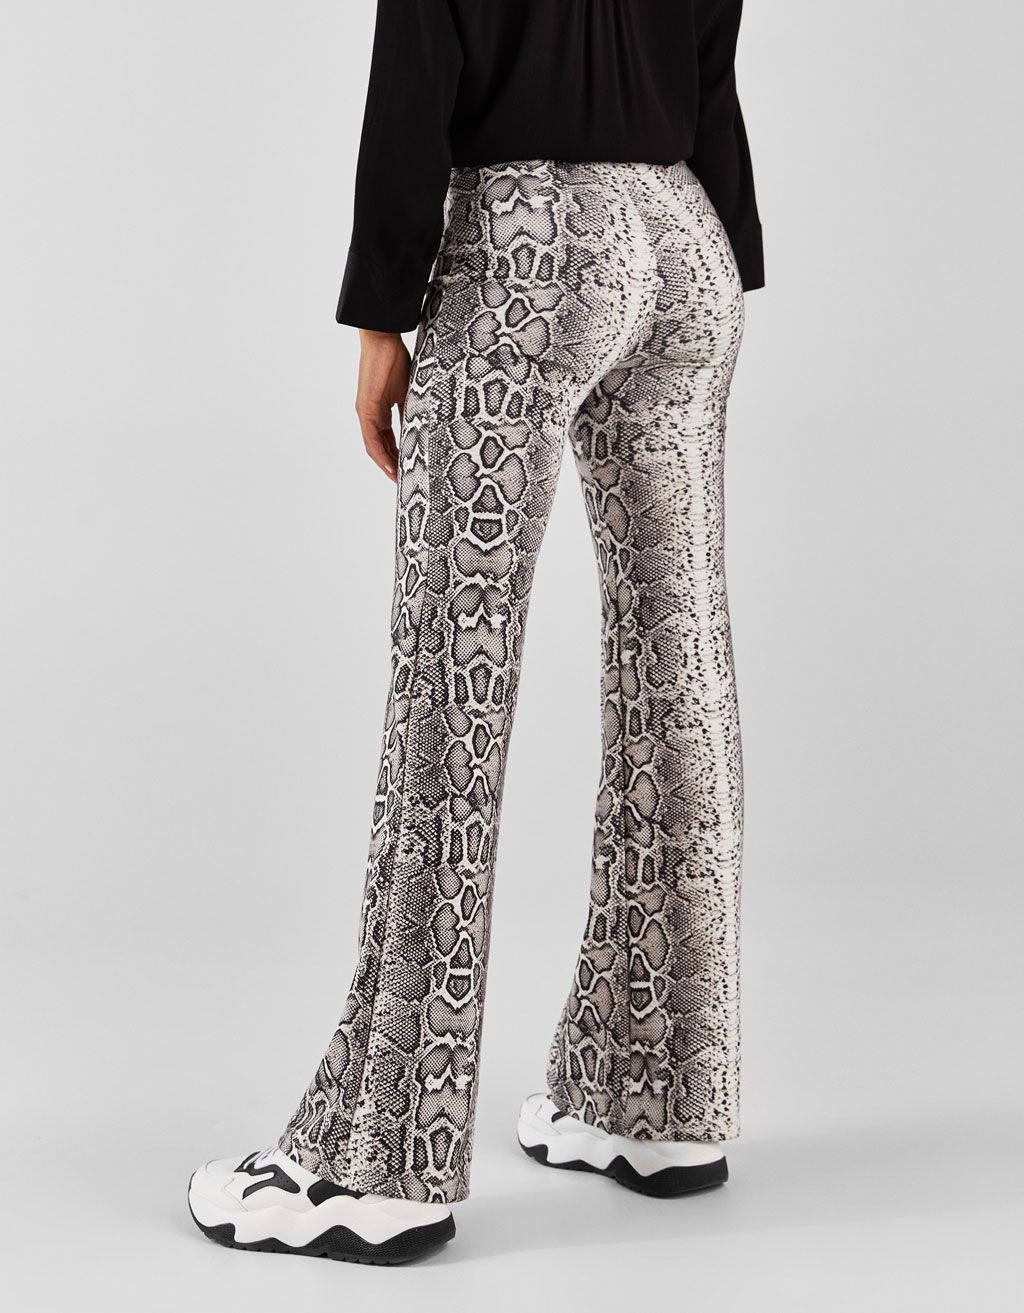 74fbefa0d Flared leopard print trousers in 2019 | Fashion | Leopard print ...